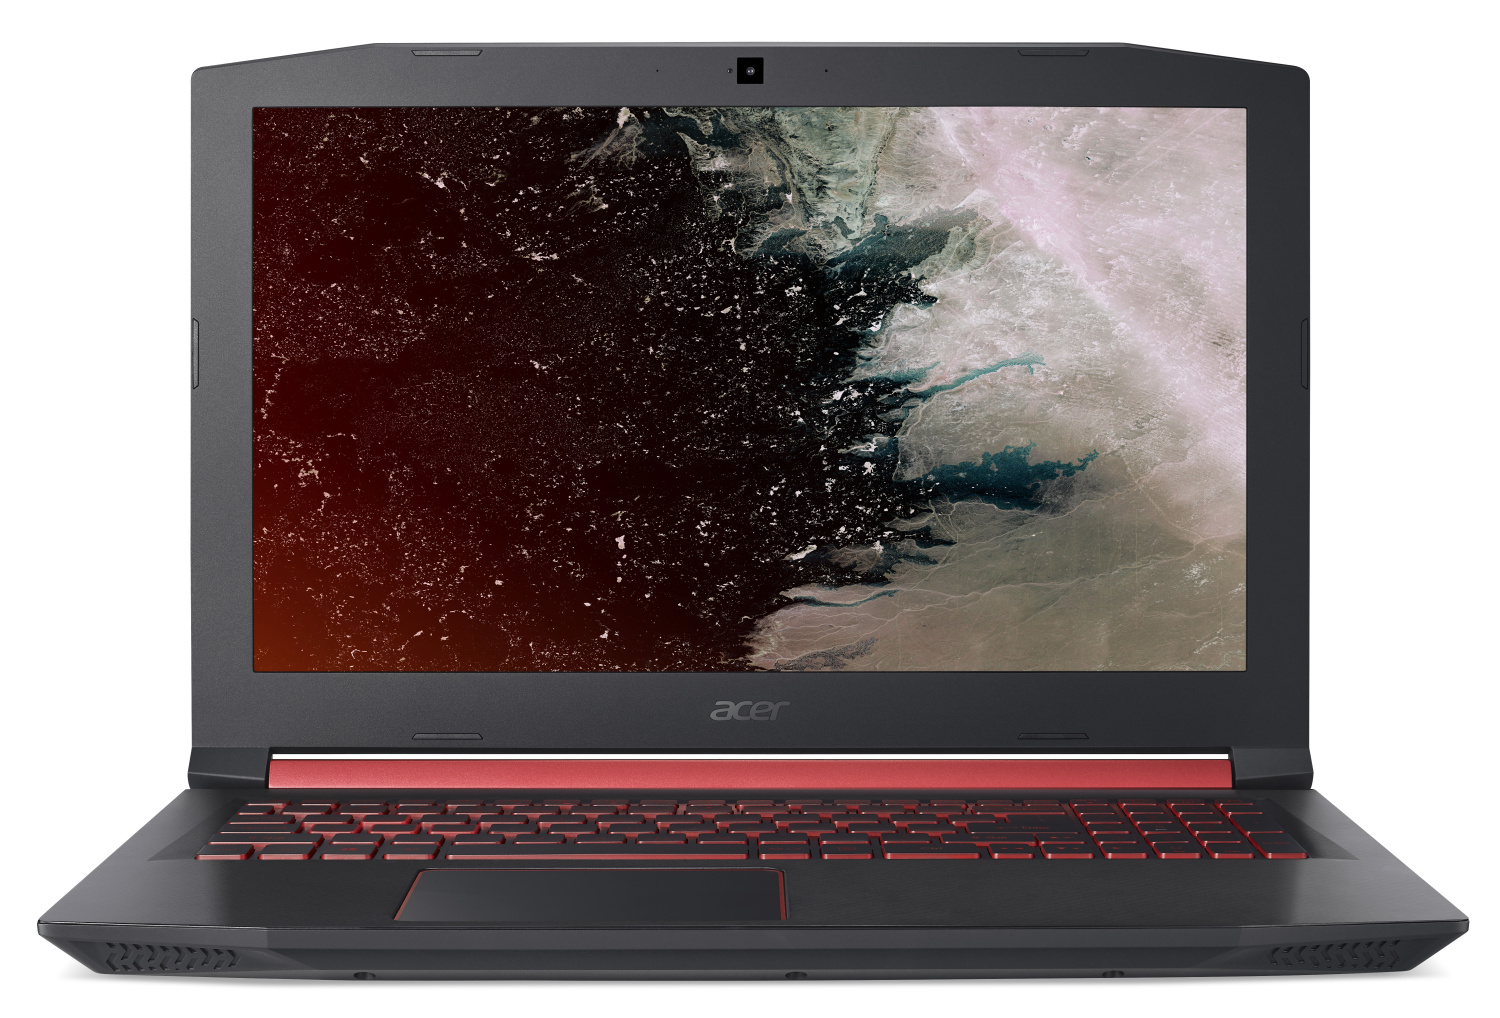 "Acer Nitro 5 (AN515-52-50H1) i5-8300H/8GB+N/1TB 7200 ot./GeForce GTX 1050 4GB/15.6""FHD IPS LED matný/W10 Home/Black"